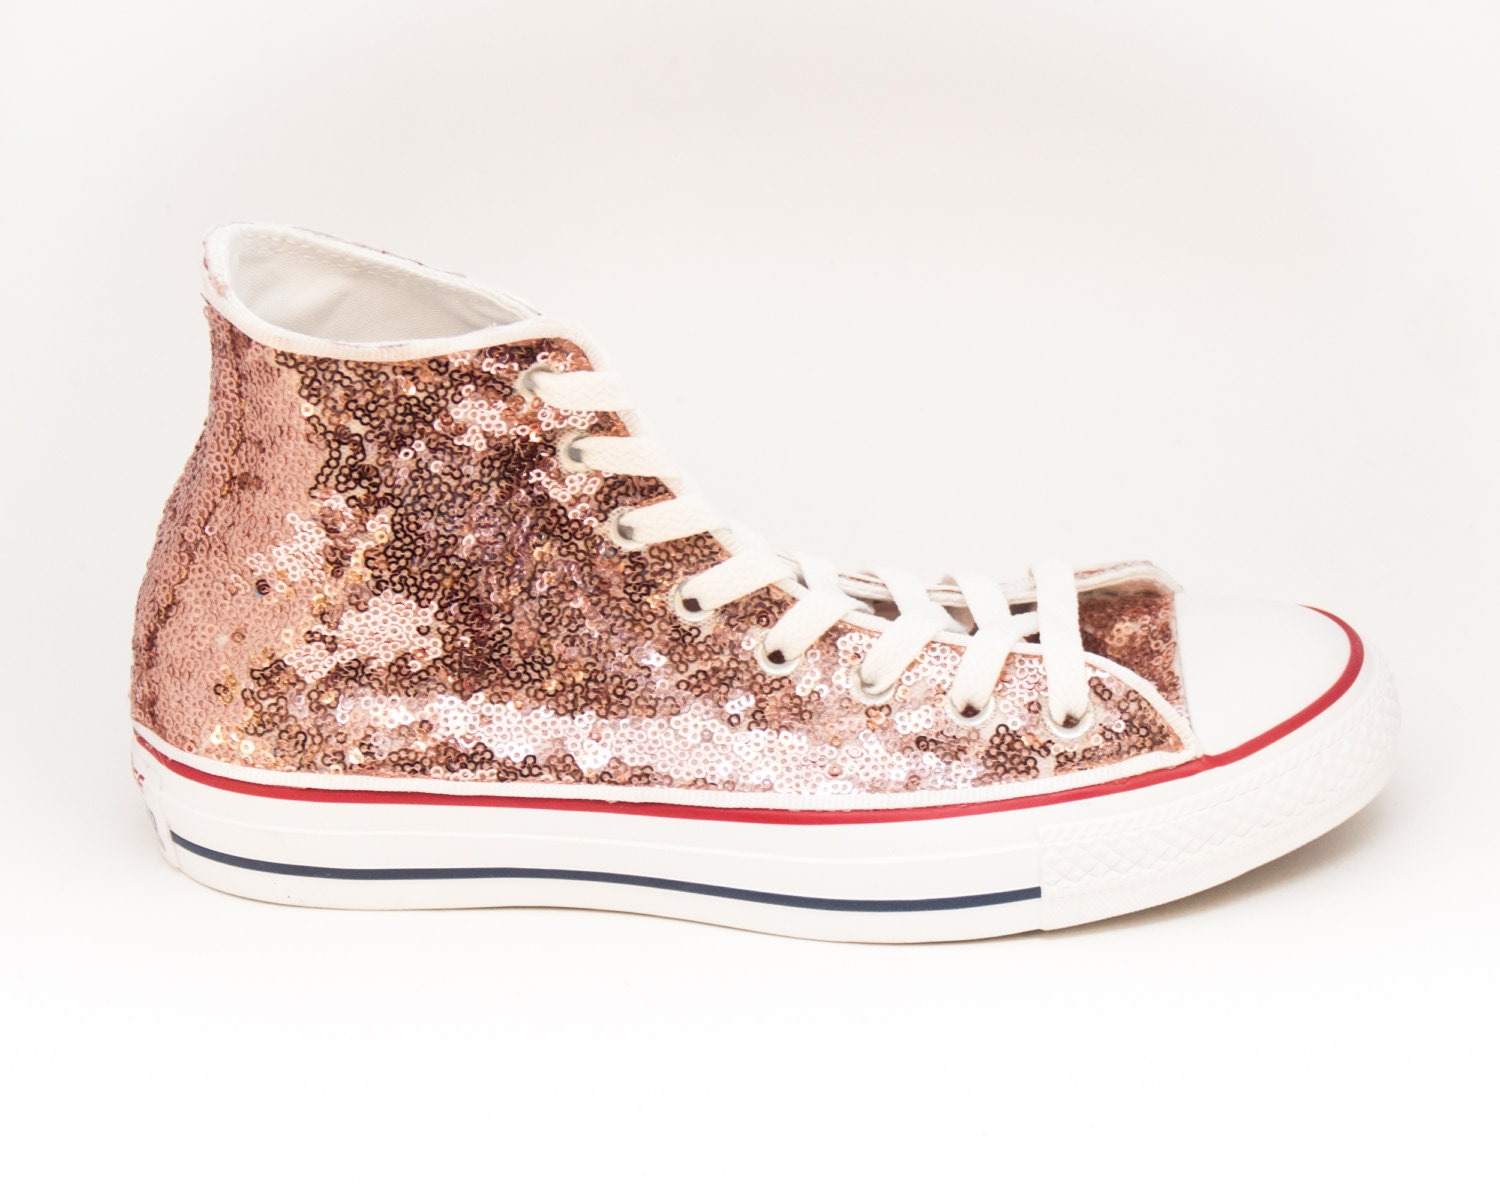 sequin rose gold canvas customized converse by princesspumps. Black Bedroom Furniture Sets. Home Design Ideas